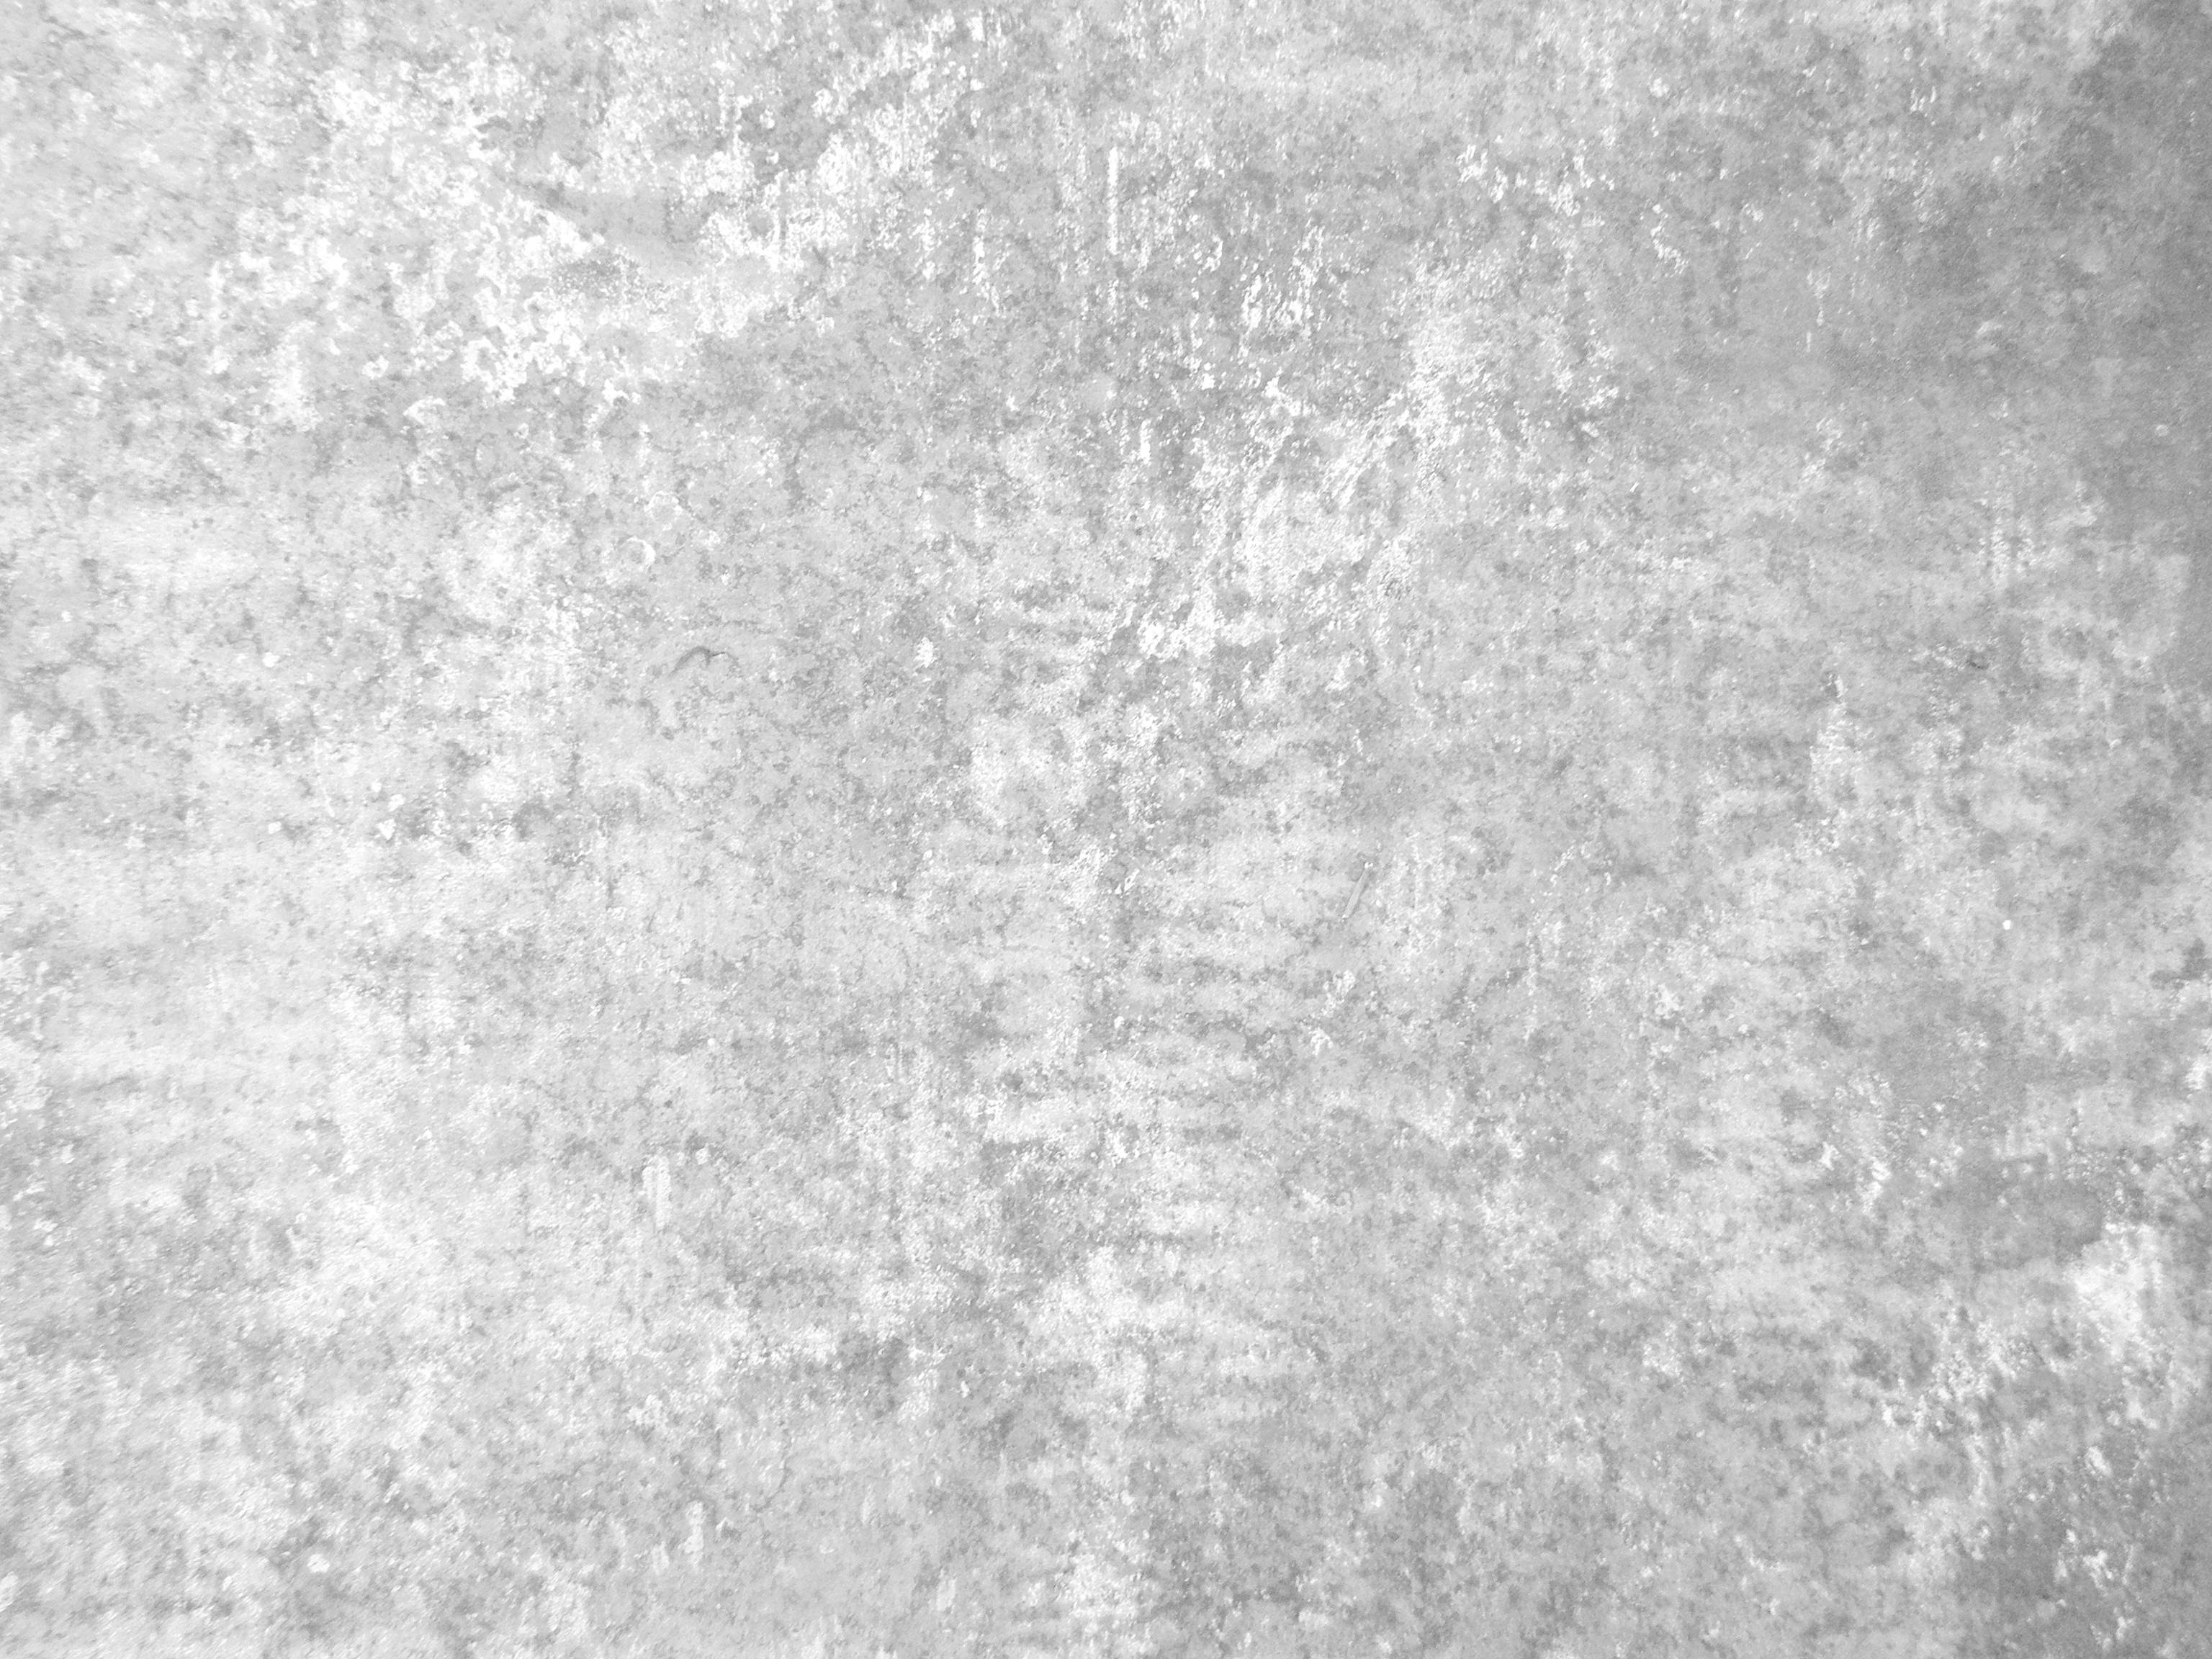 Free photo: Grey Grunge Texture - Backdrop, Light, Texture ...